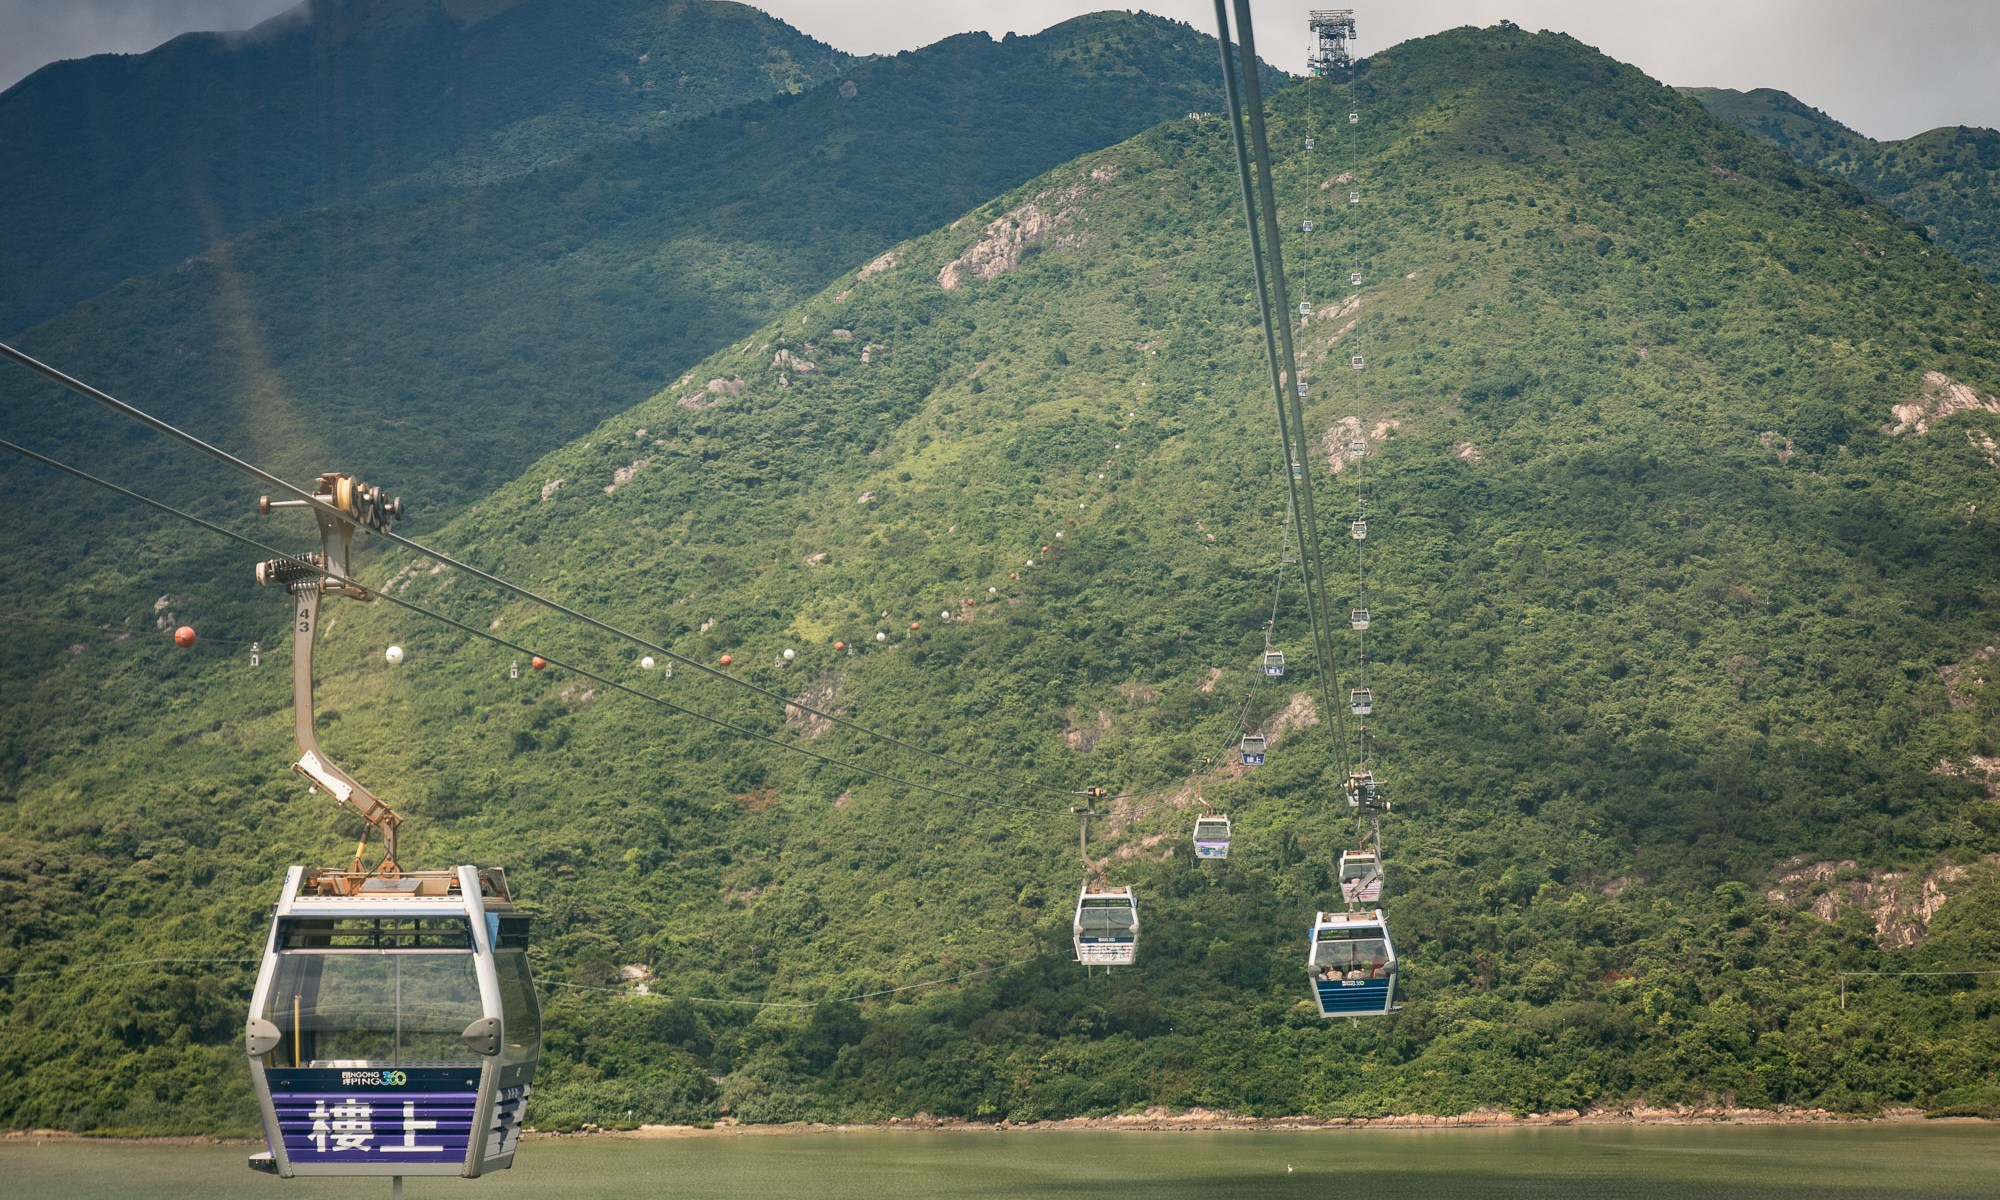 Cable car over Tung Chung Bay